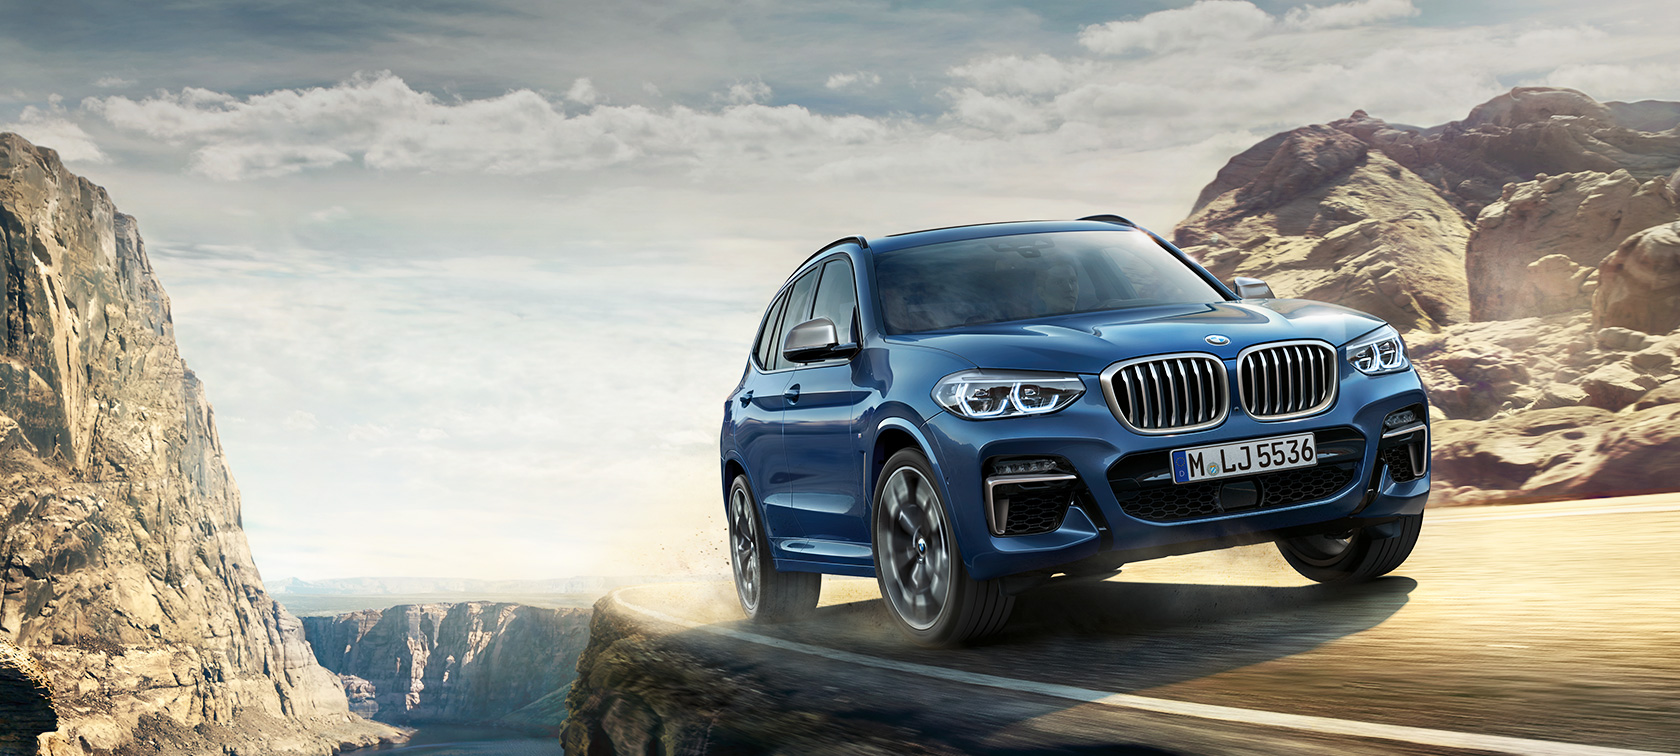 BMW X3 M40i on mountain trail, driving shot